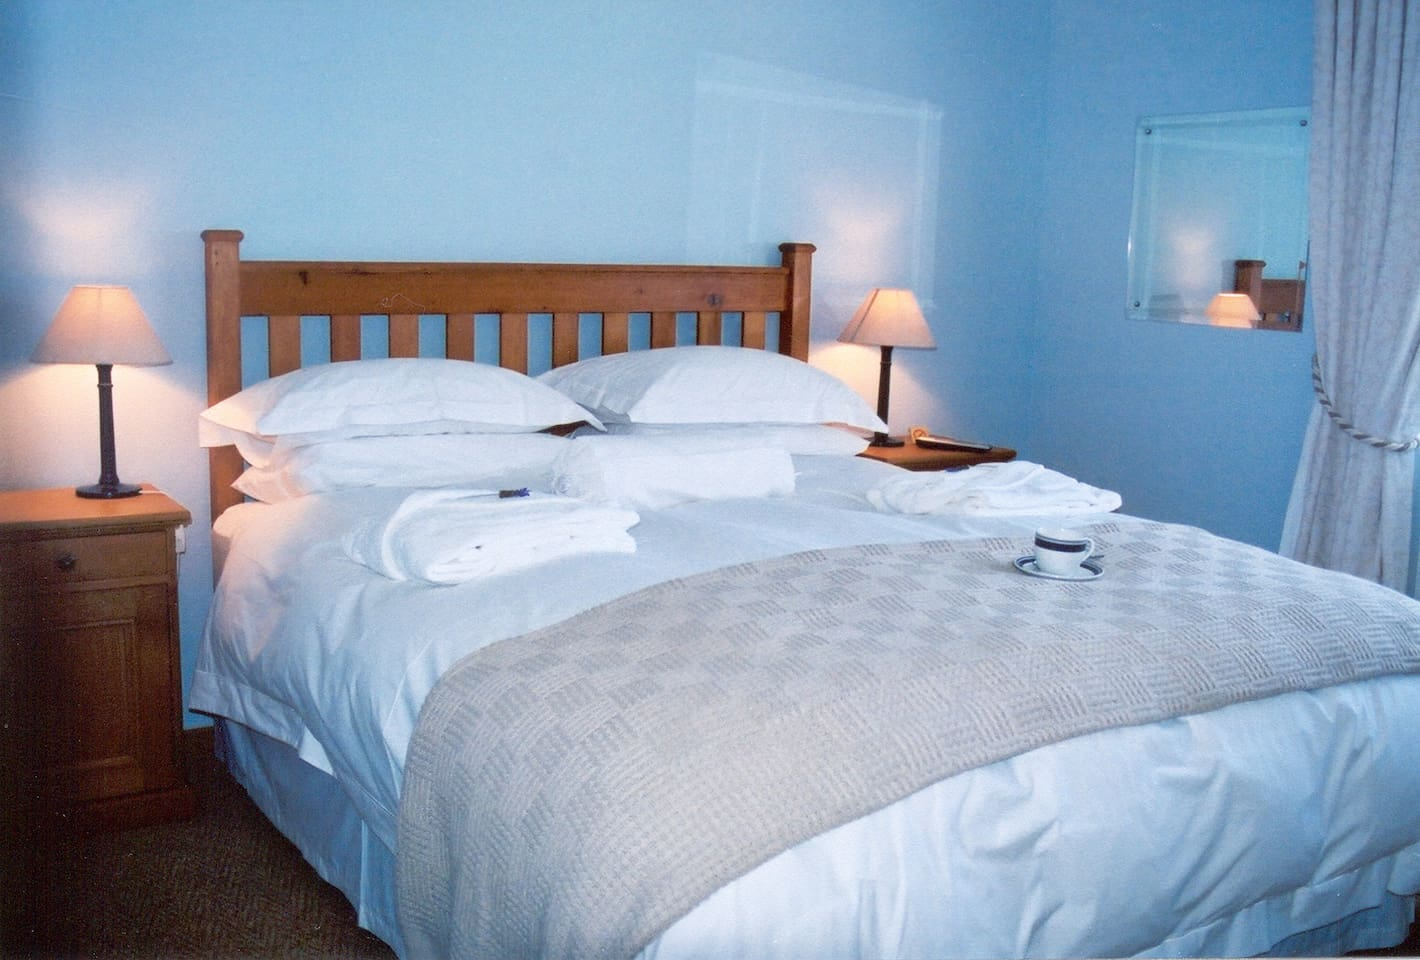 This room has a queen size bed and full en suite bathroom. The light blue walls and straw-coloured carpeting provide a warm atmosphere.